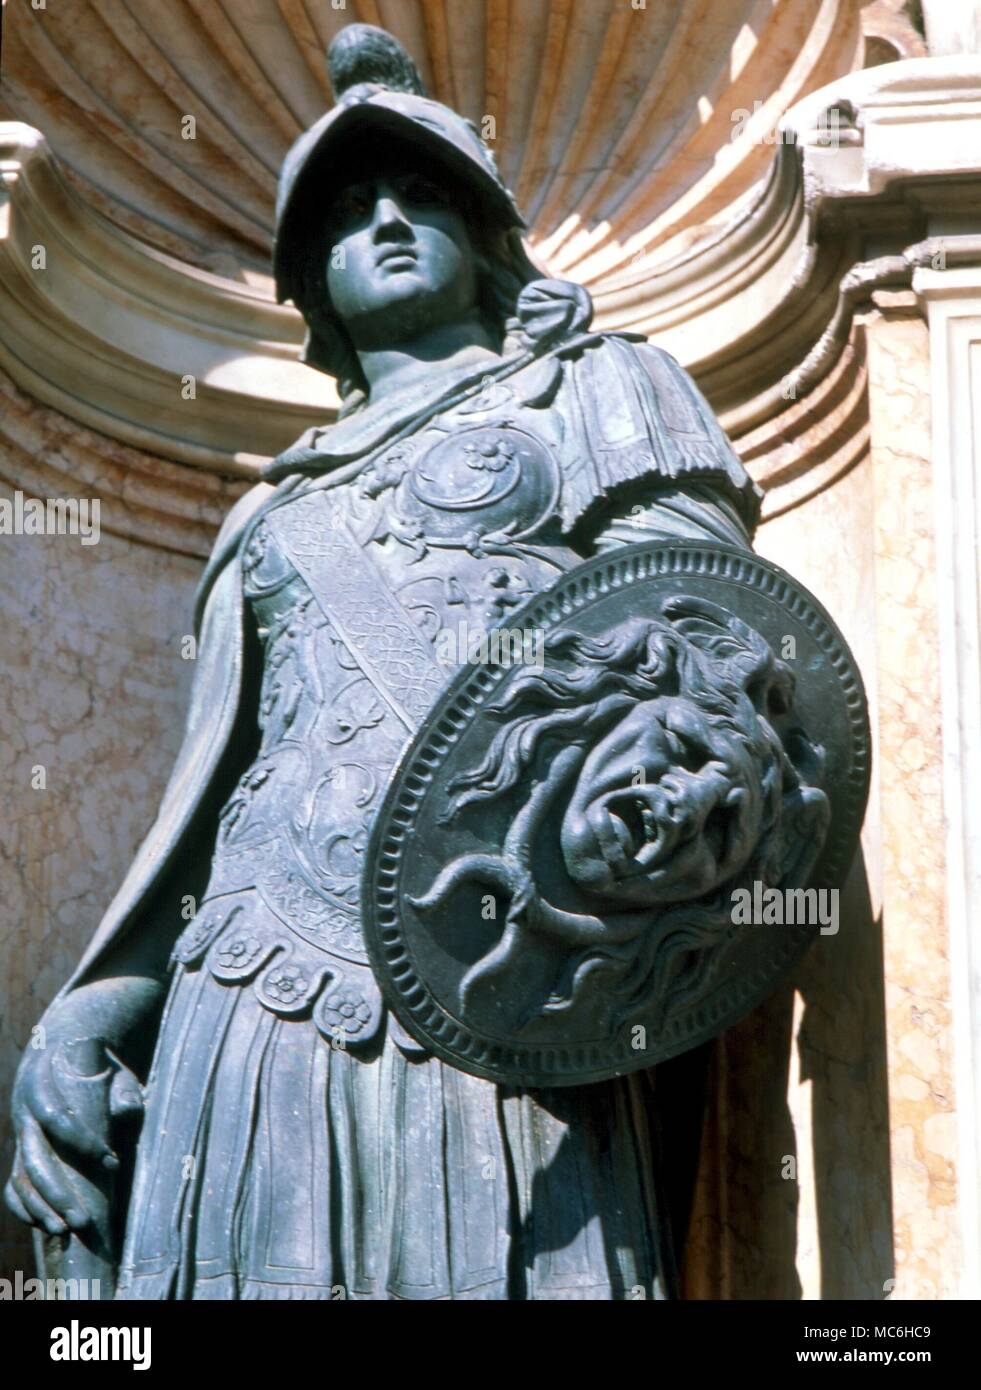 AMULETS - Medusa Shield emblazoned with the amuletic device of the Medusa Head, which is supposed to render enemies motionless, or dead.  Statuary in the small loggia of the Campanile, Venice - Stock Image